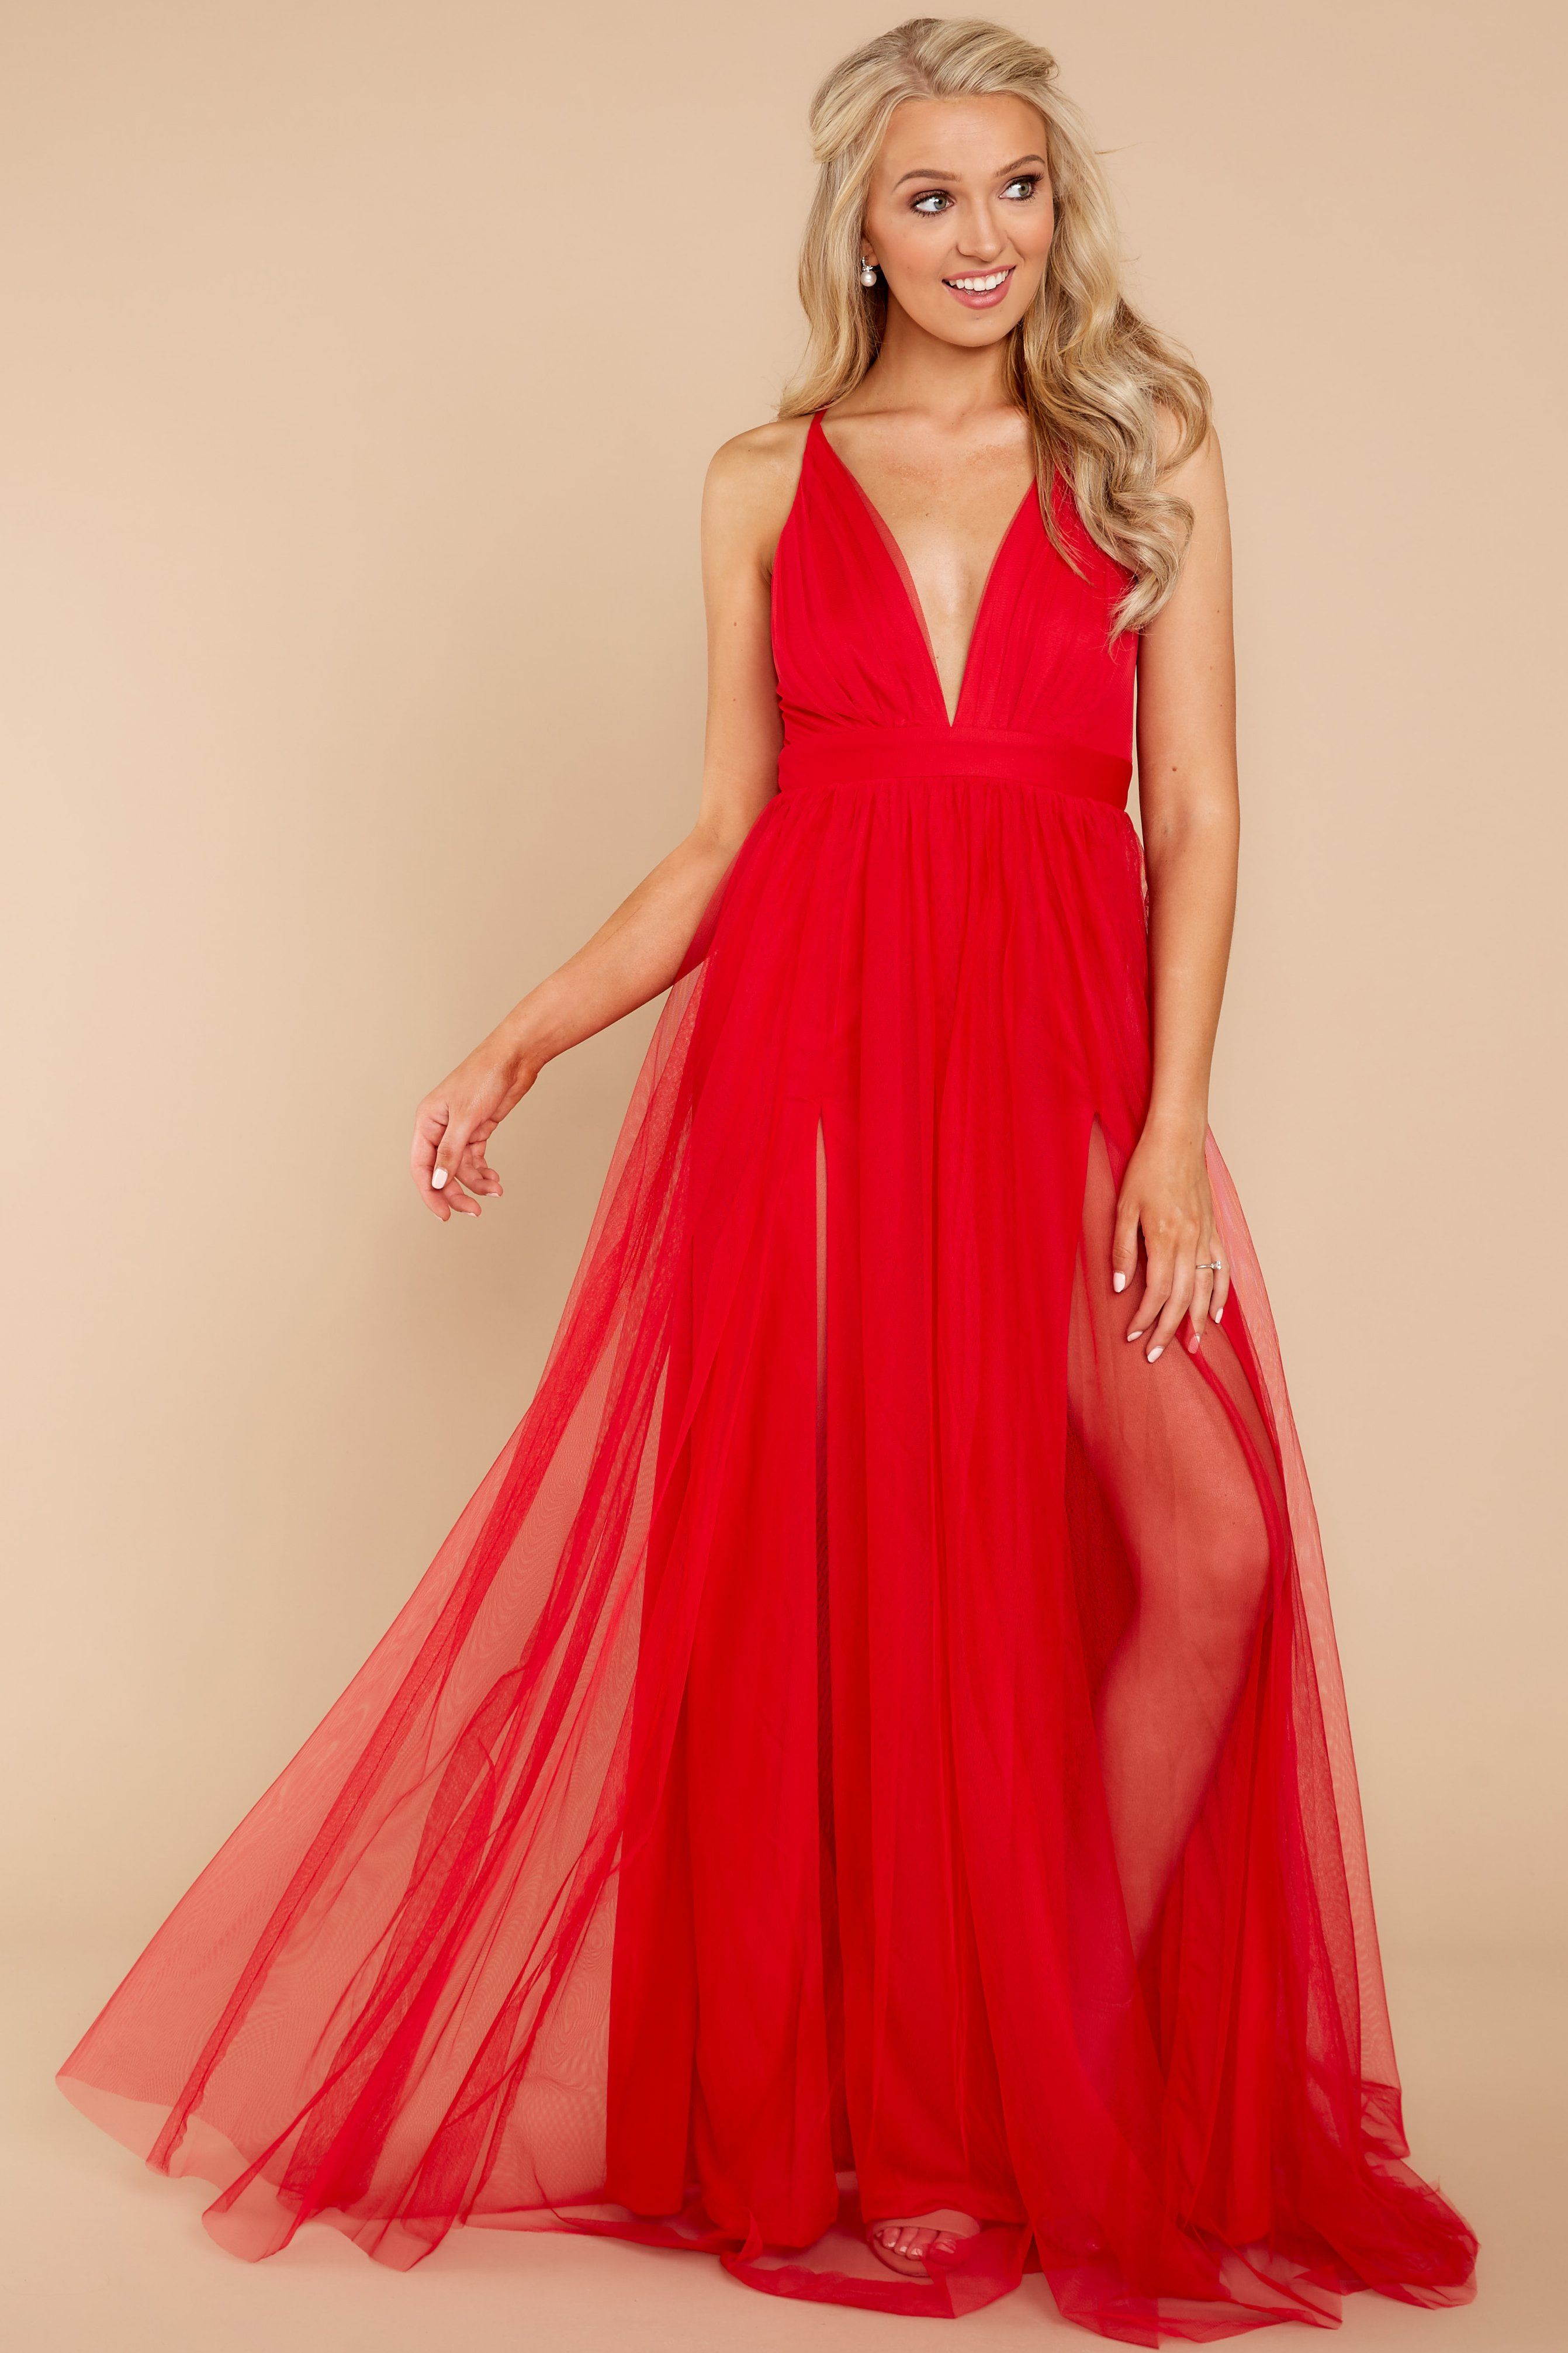 f6c2eb6a9e Elegant Red Tulle Maxi Gown - Flowy Formal Maxi Dress - Dress - $66.00 – Red  Dress Boutique